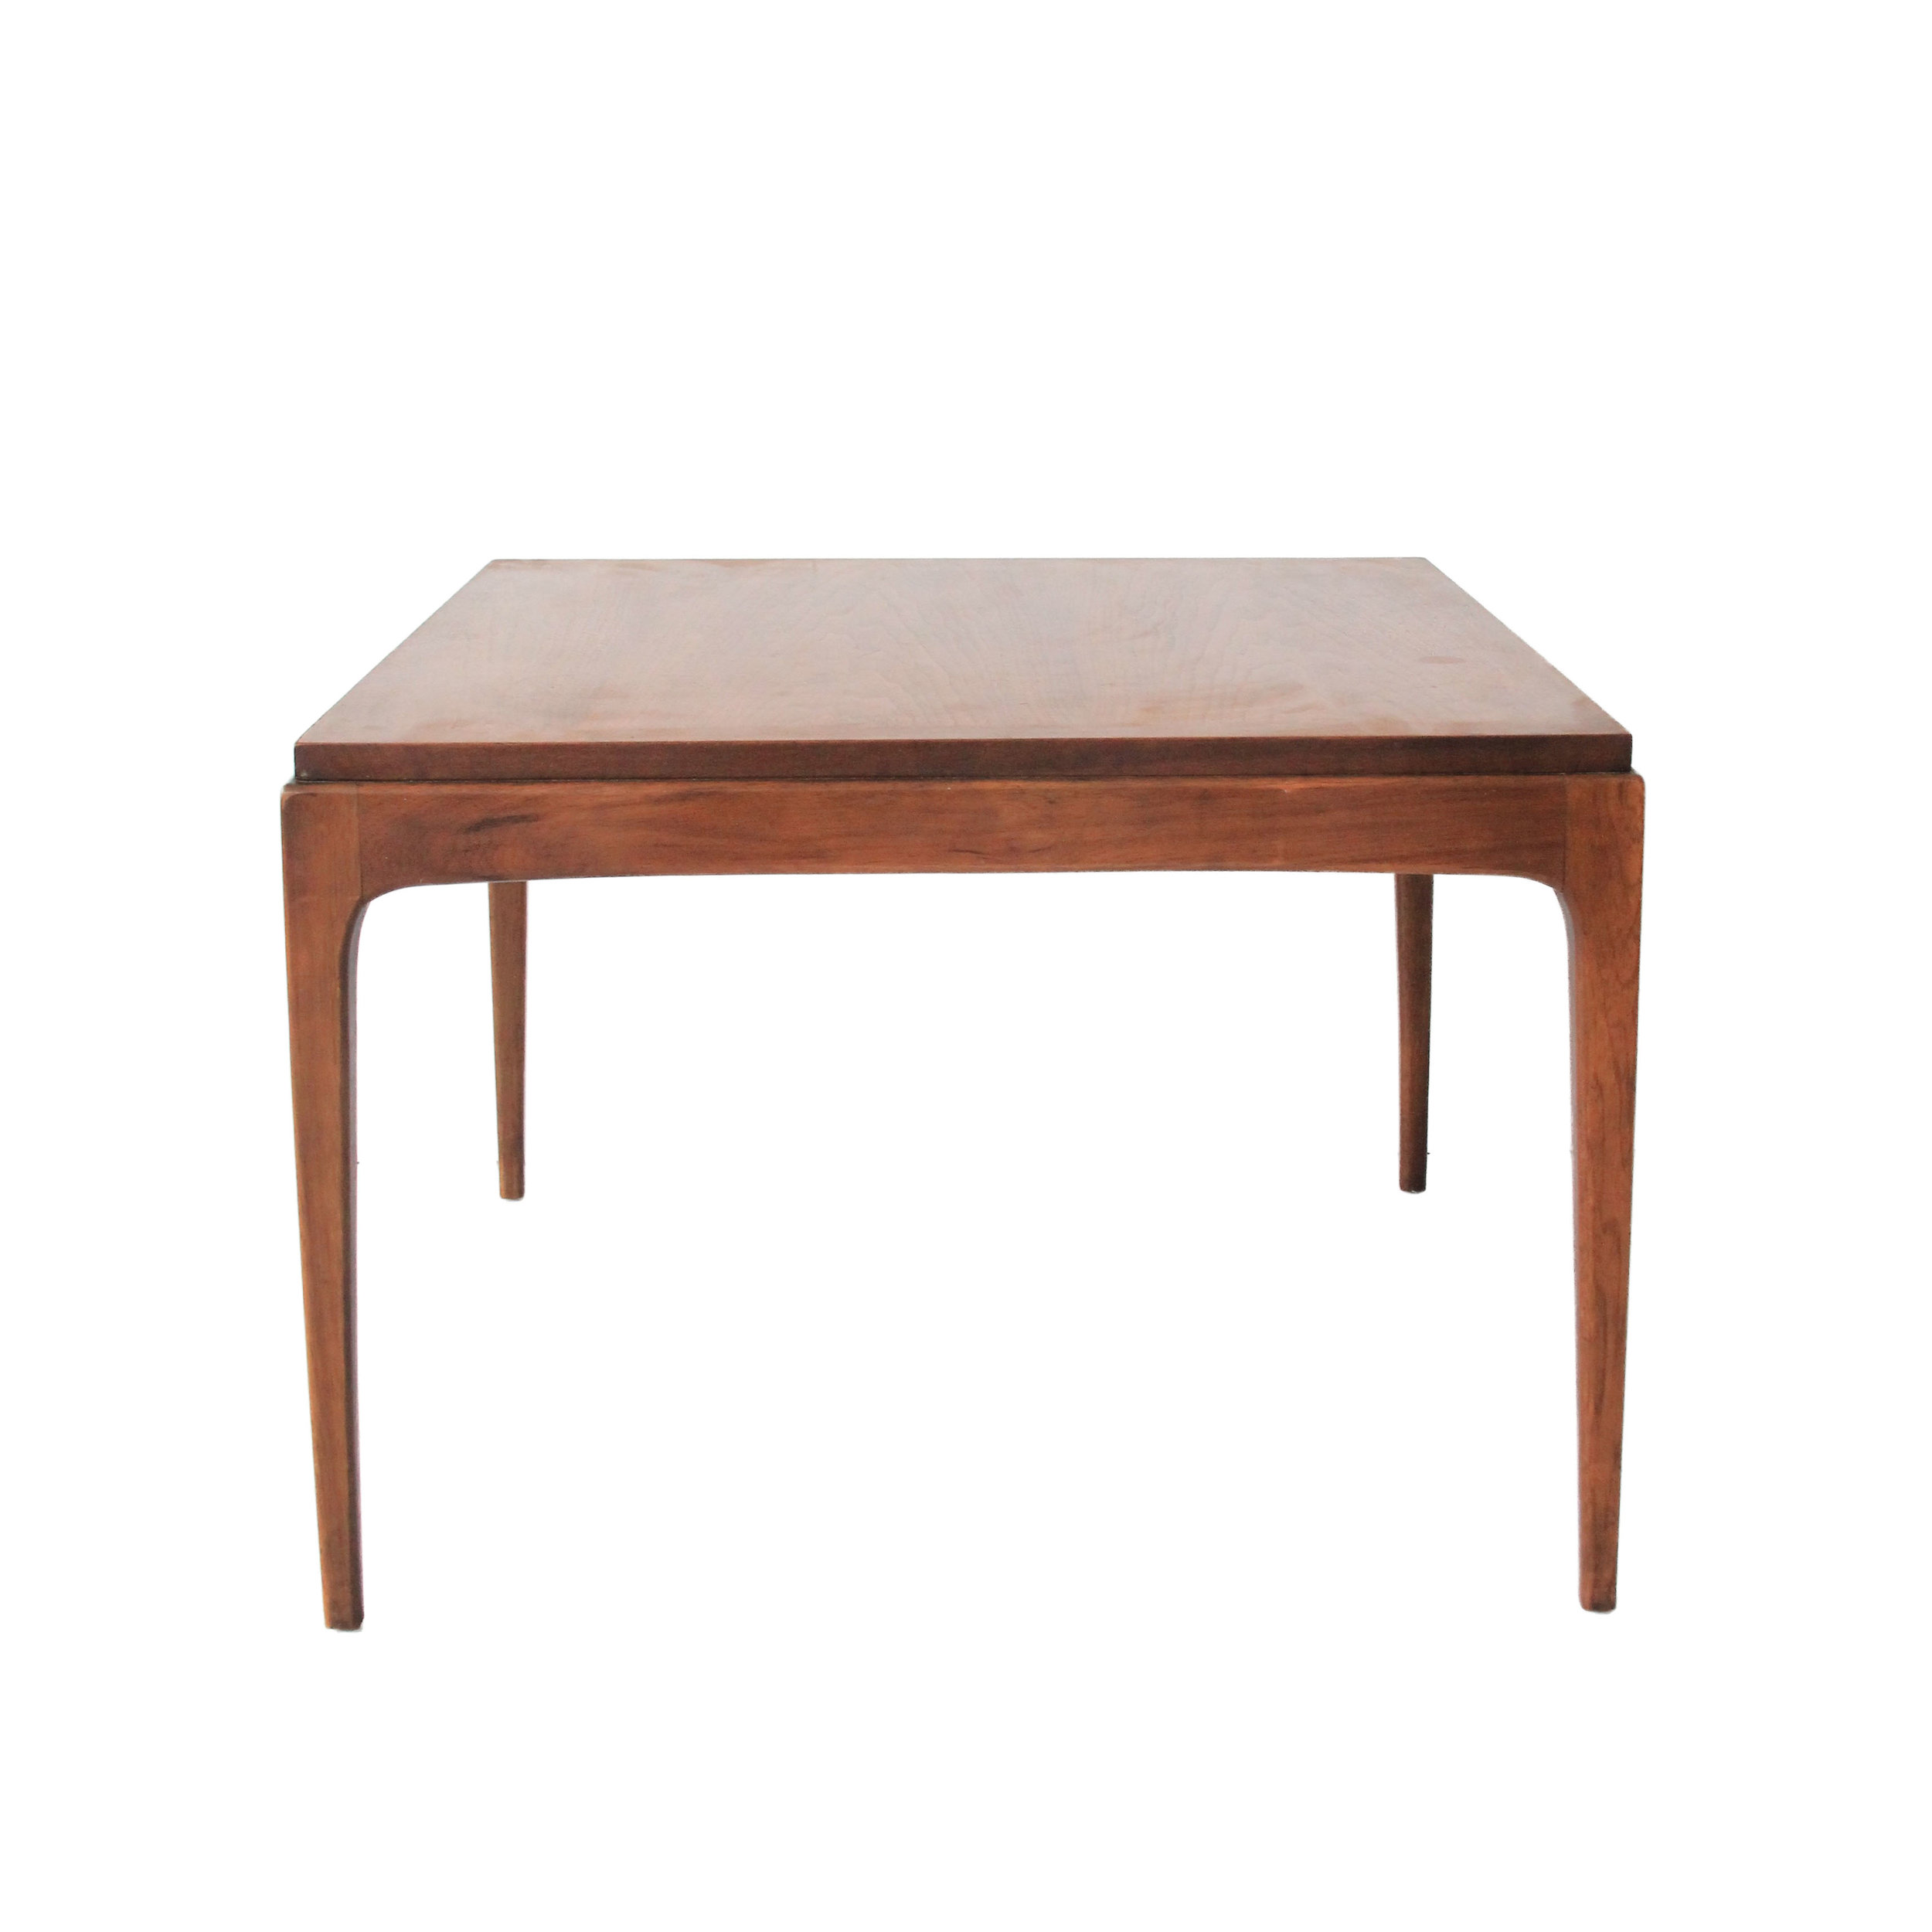 Vintage Mid Century Modern Side Table by Lane